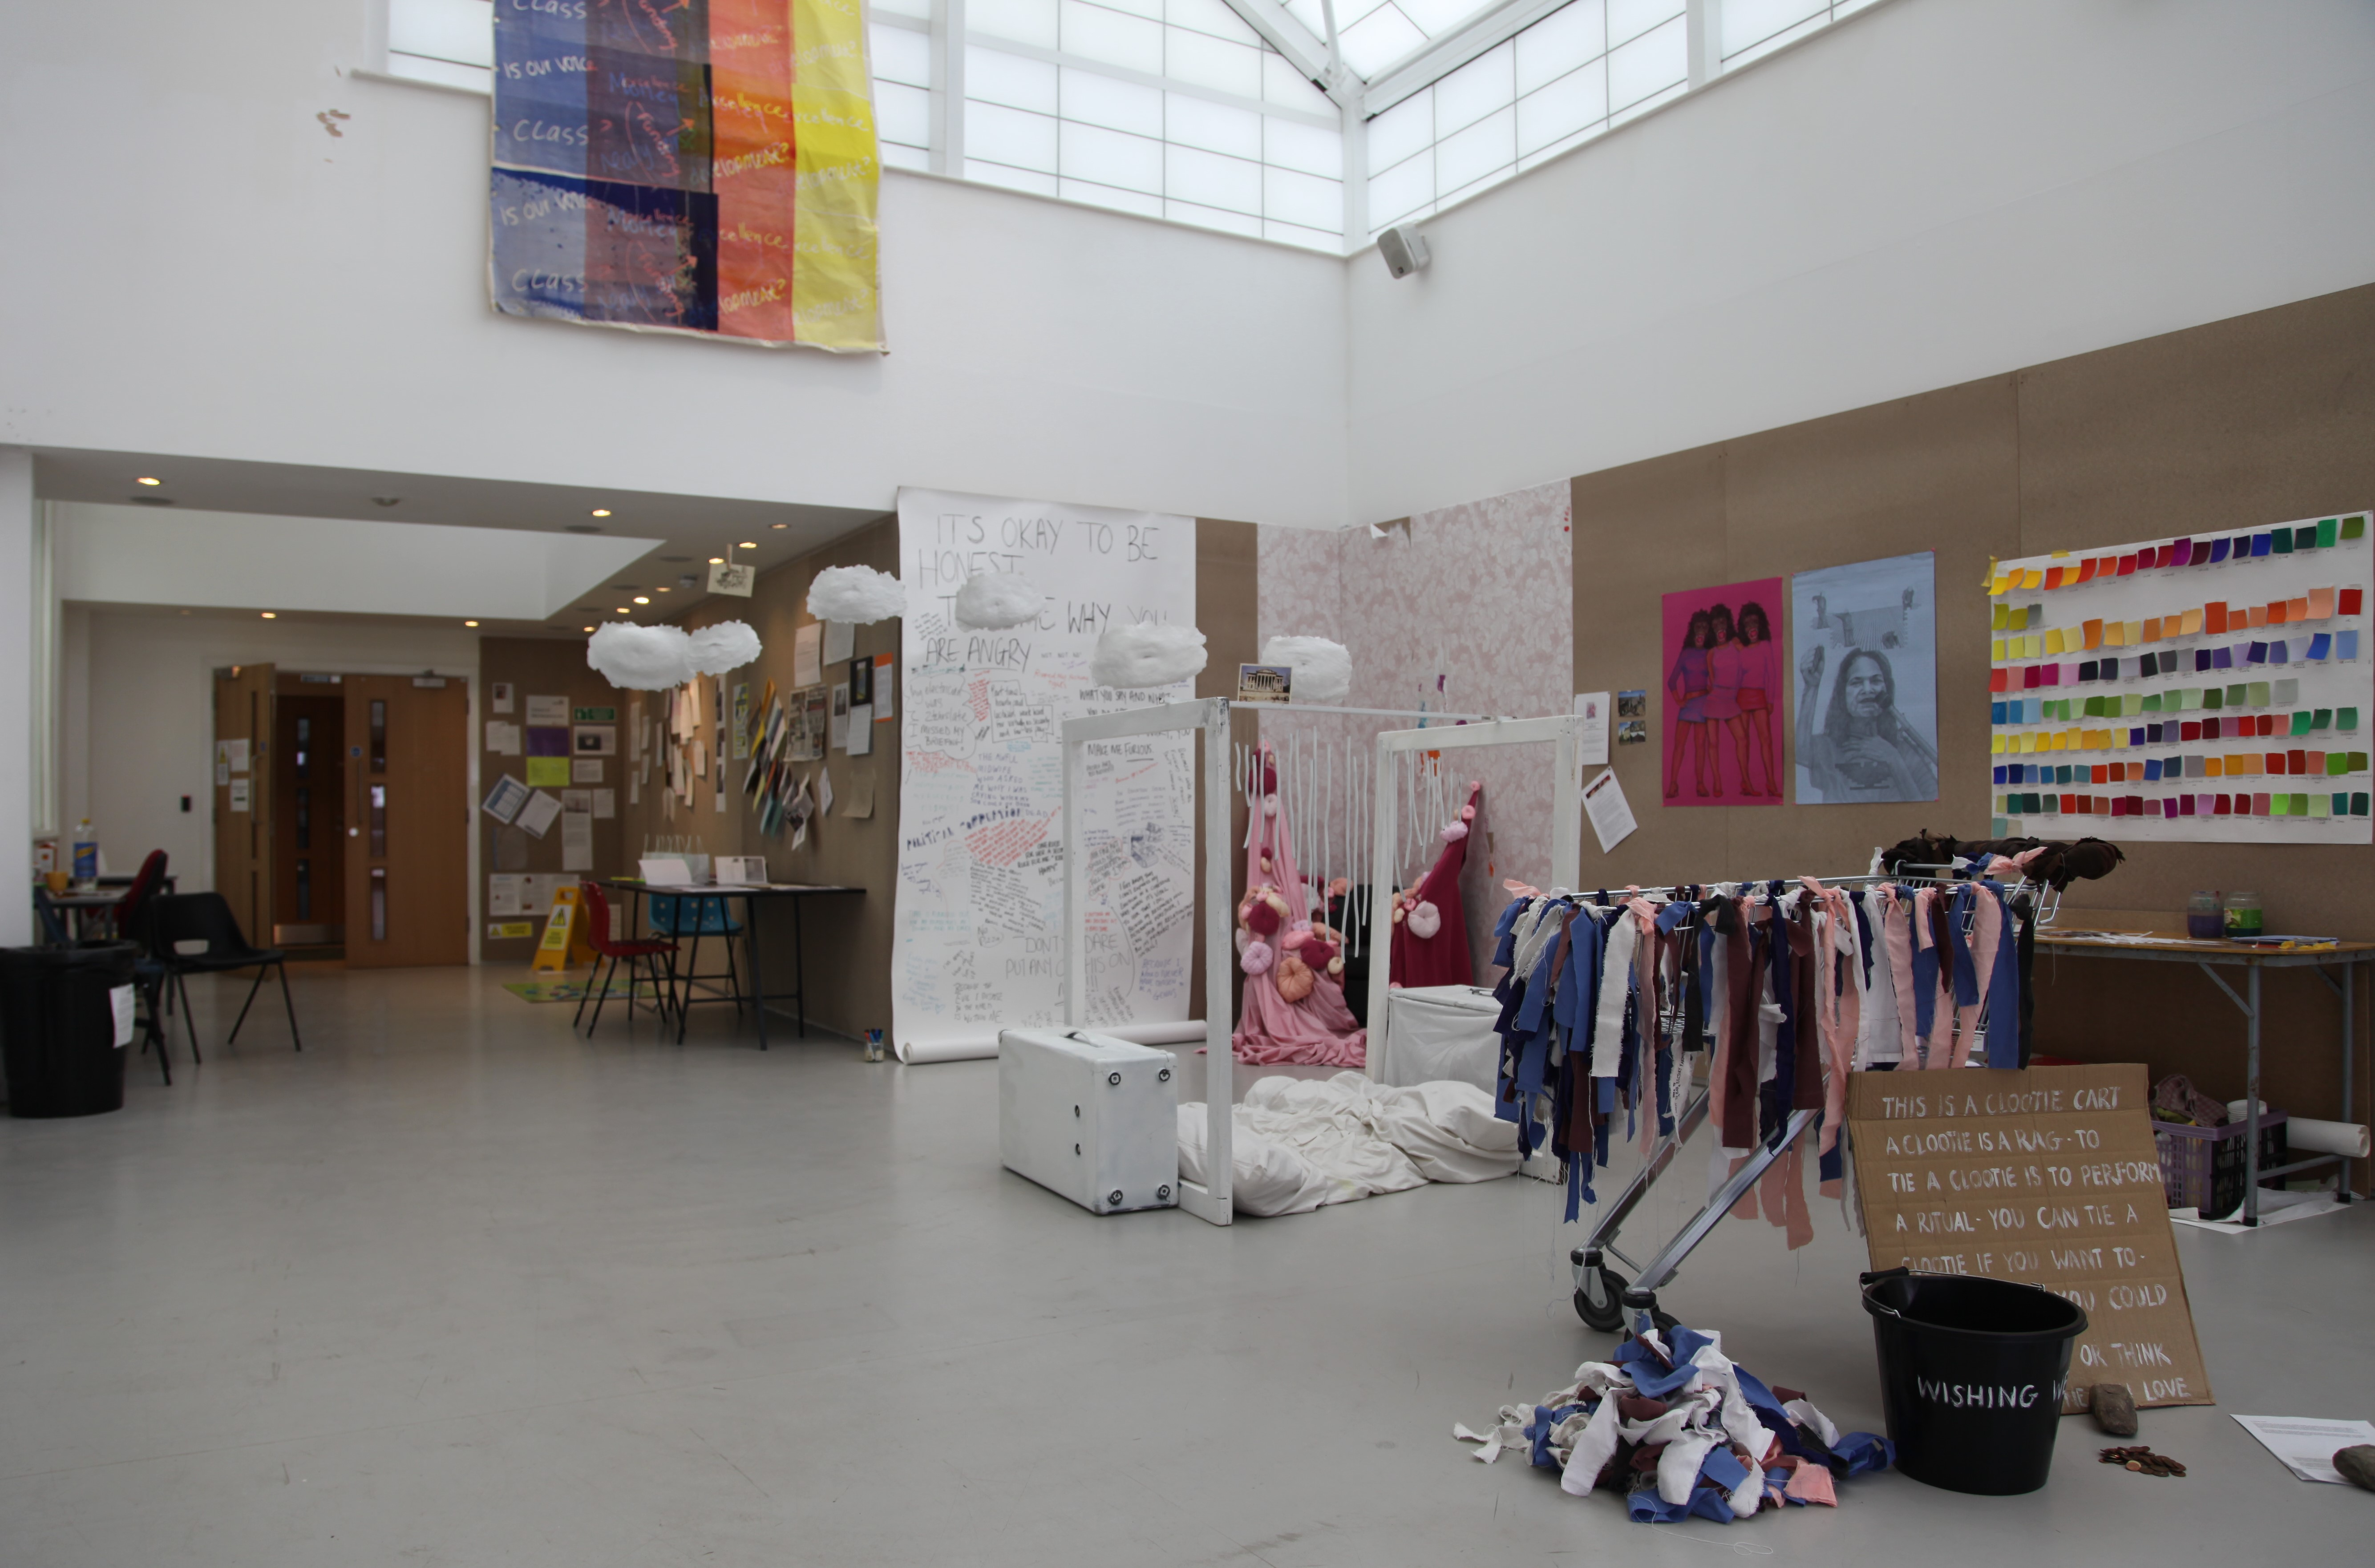 Installation view. Messy Democracy at the Hanover Project, University of Central Lancashire